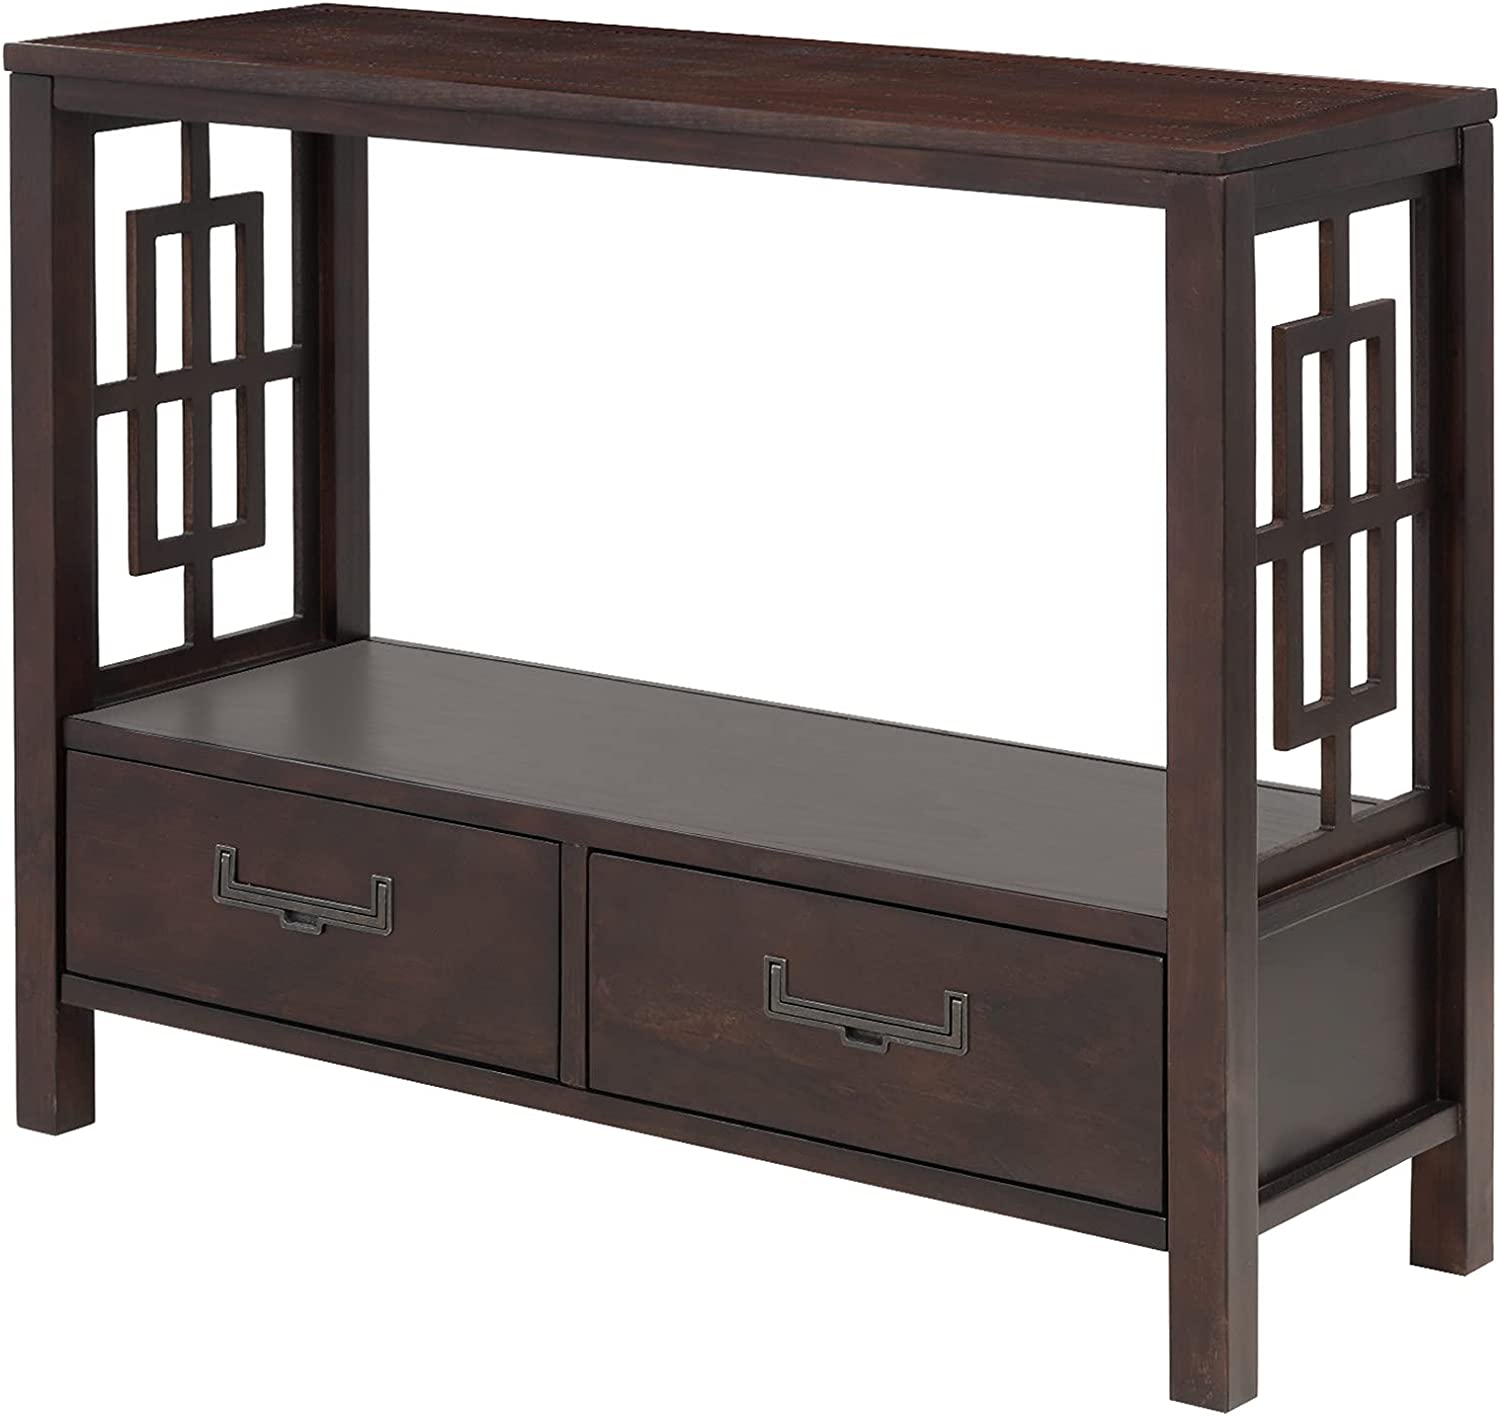 Wood Console Sofa Table with Drawers Shelf and Buf Open Storage We Popularity OFFer at cheap prices